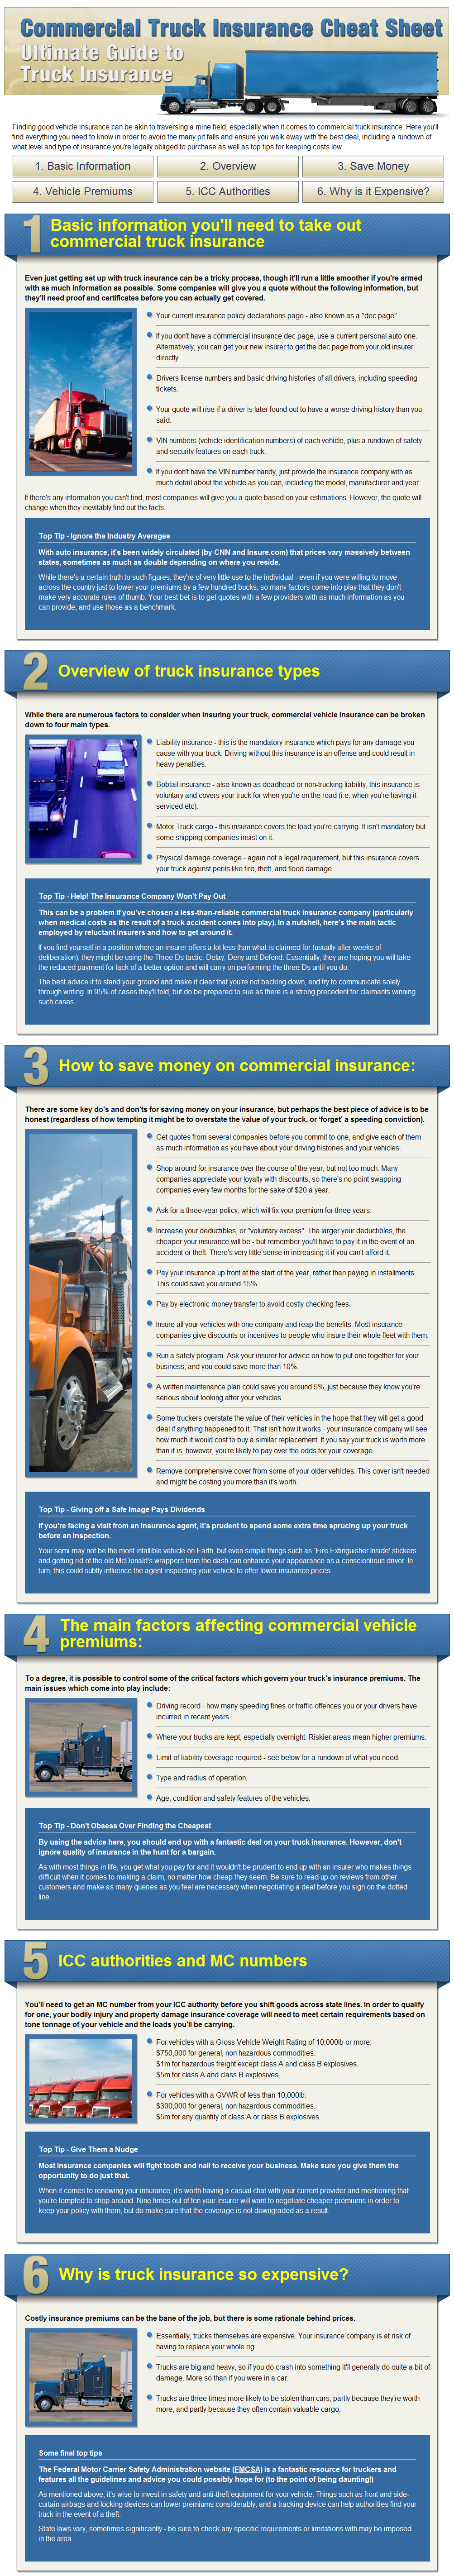 Insurance Quote Guide for Commercial Trucks